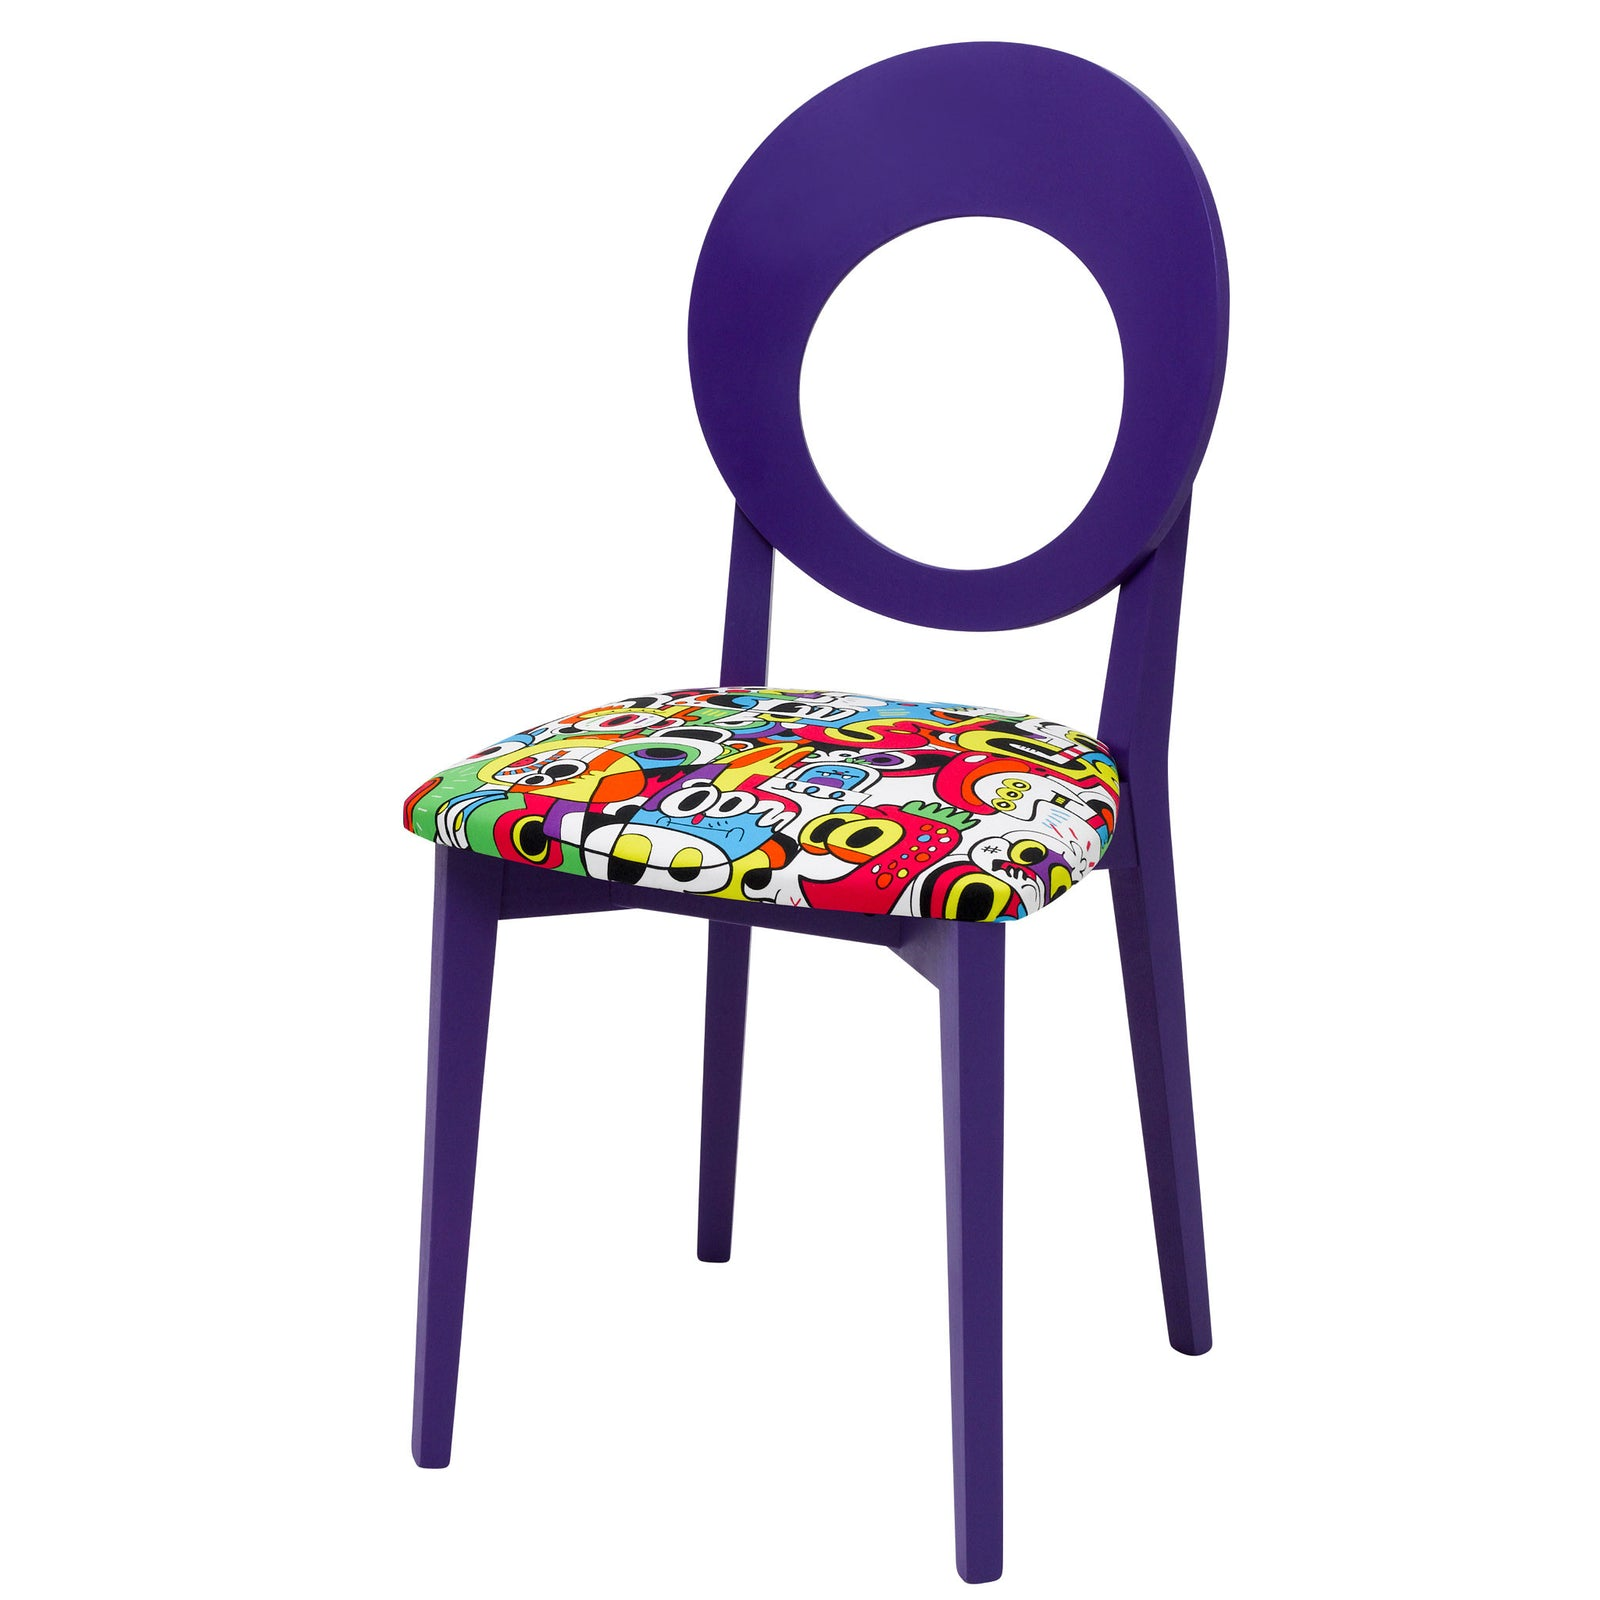 Chloe designer dining chair painted purple upholstered in Frooty Tooty Tropical fabric by Jon Burgerman.